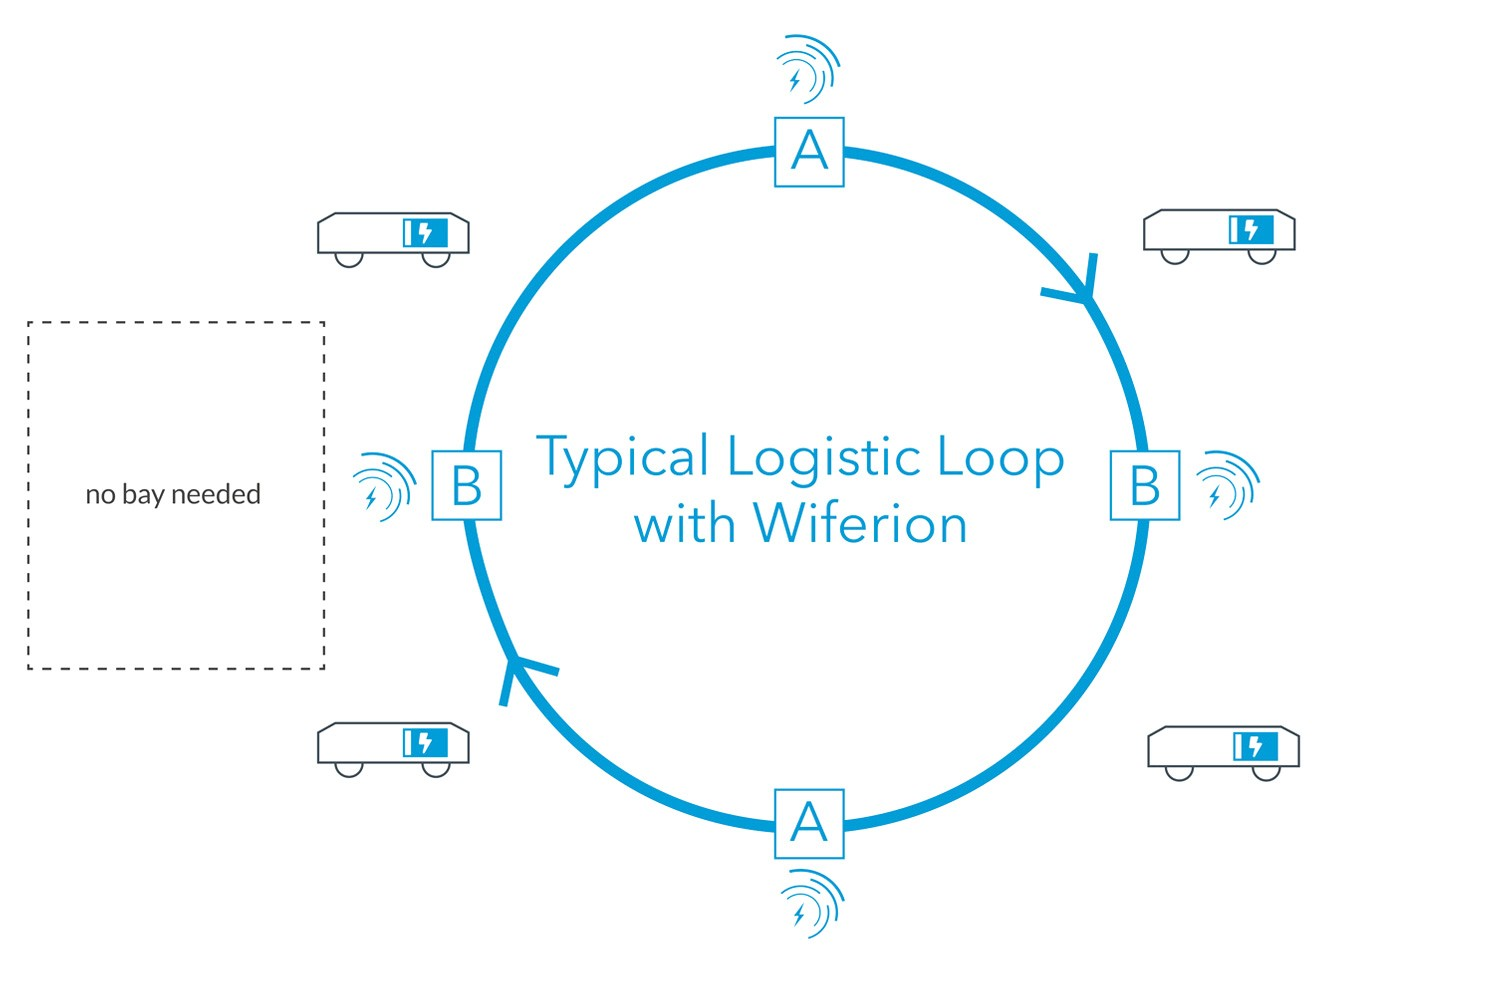 Logistic Loop with Wiferion in the e commerce - warehouse - intralogistic - inductive charging - agv - produktionslogistik - warehouse - automatisierte Routenzüge